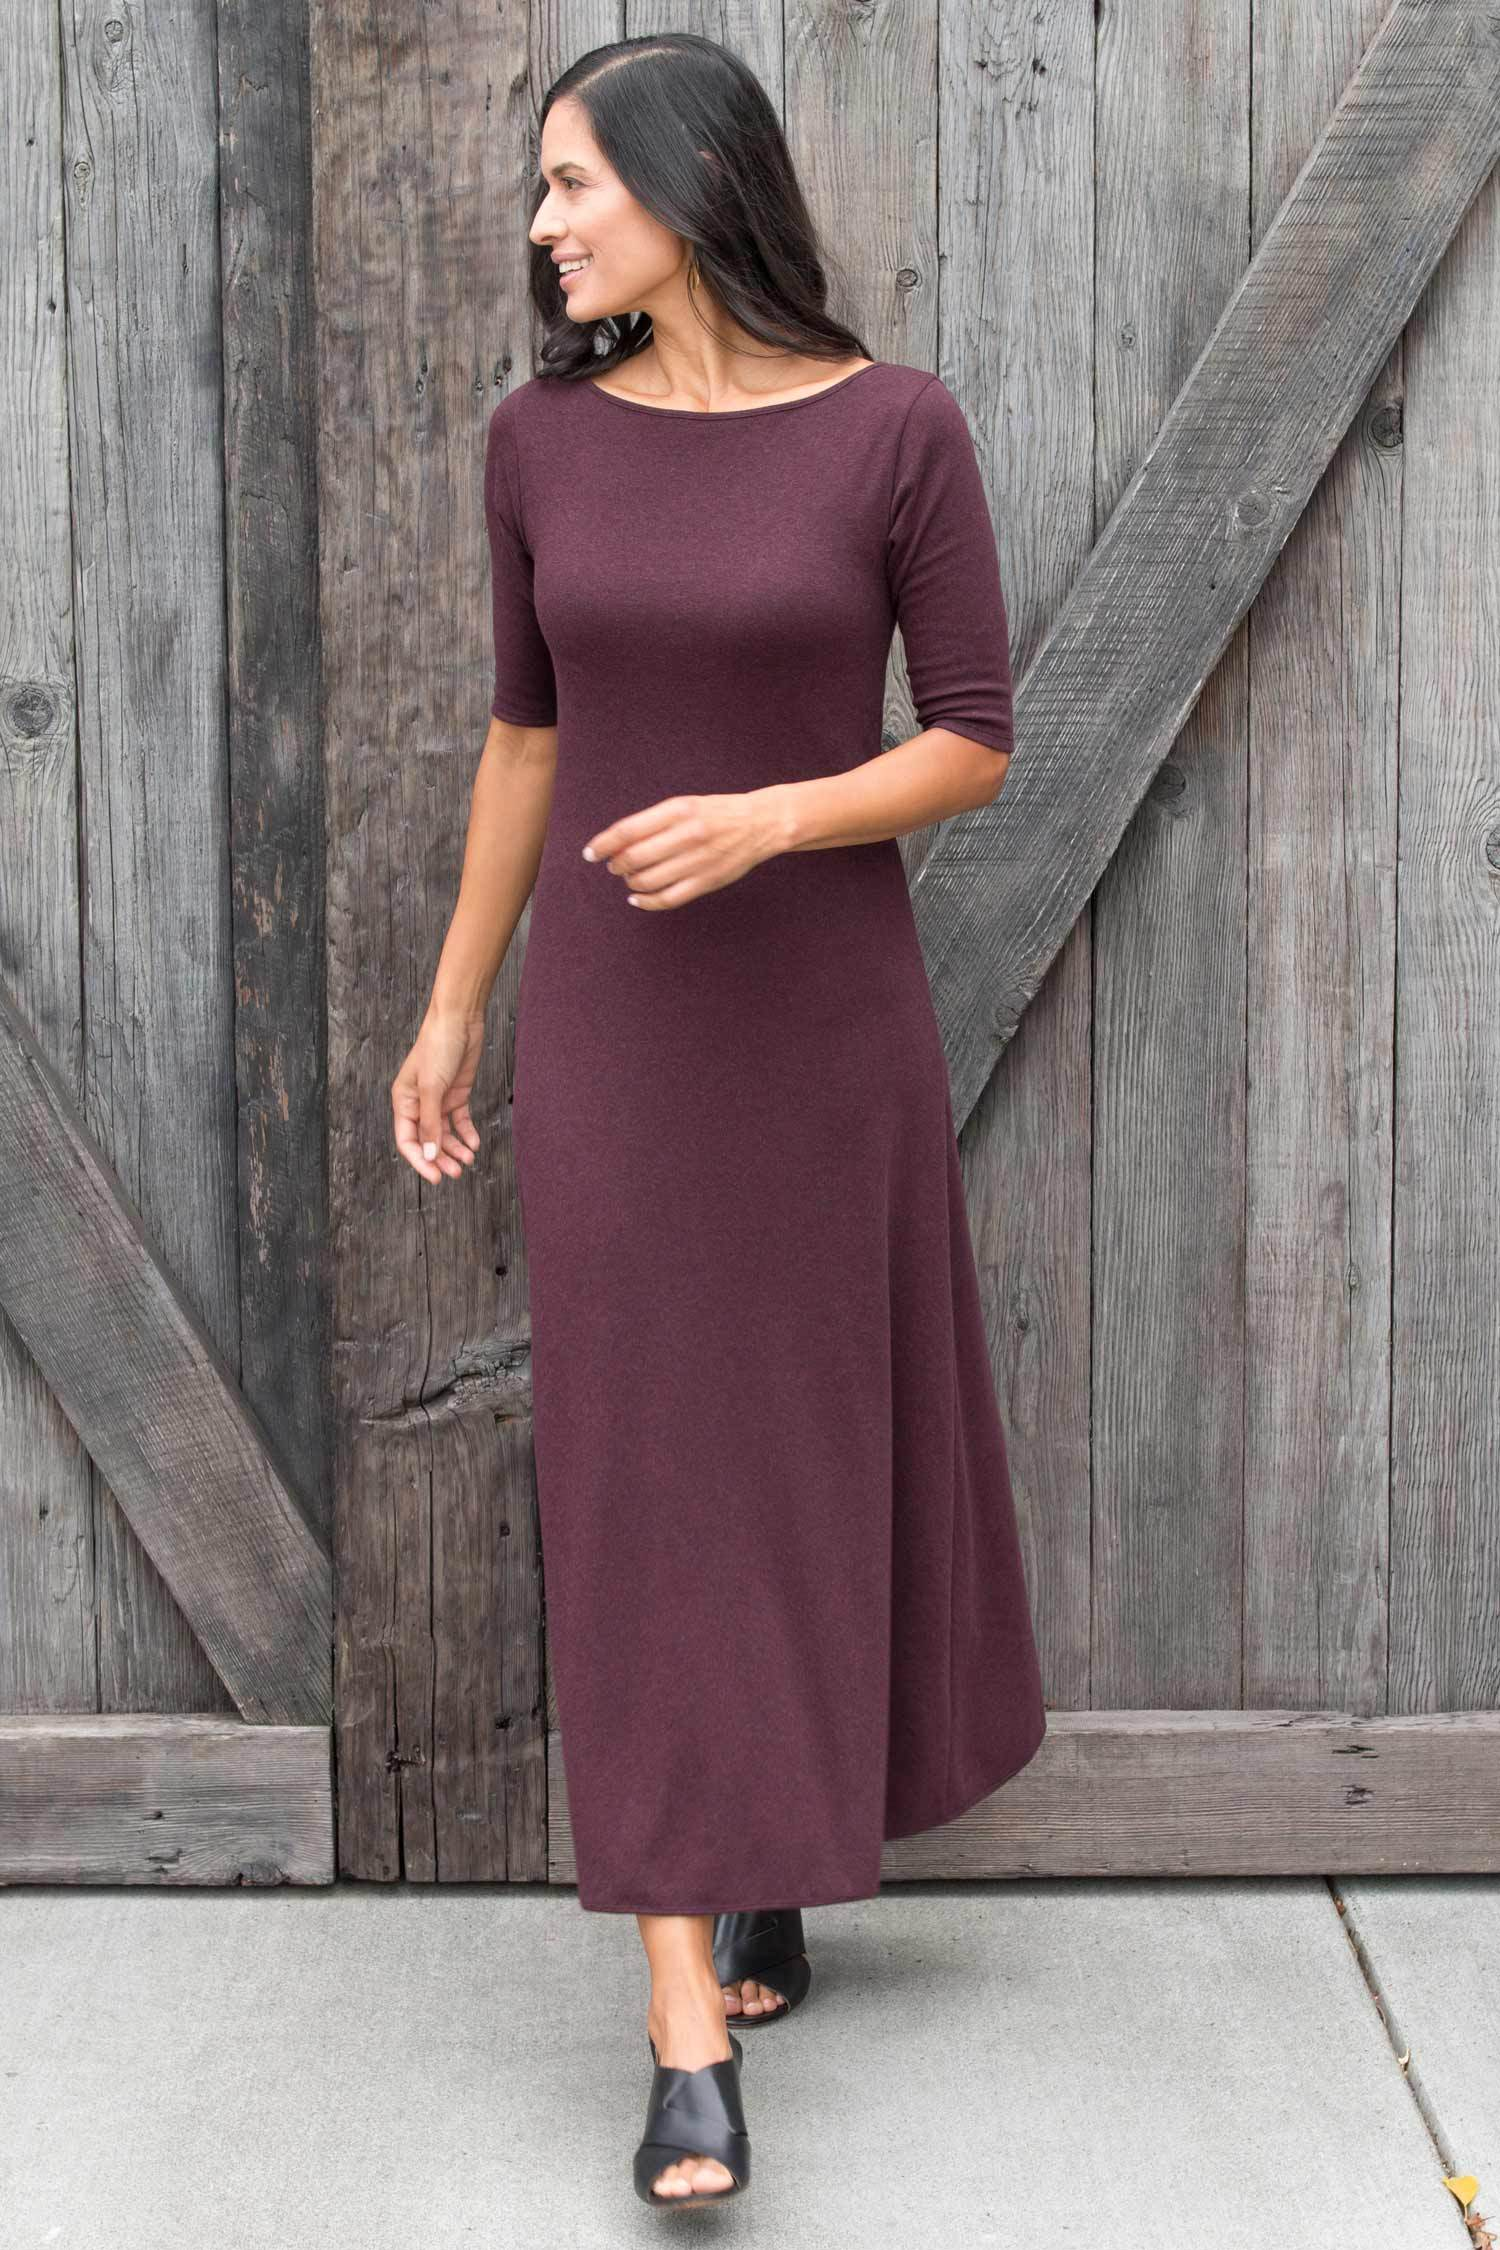 Womens Elbow Sleeve Boatneck Dress | Burgundy | Organic Cotton Clothing